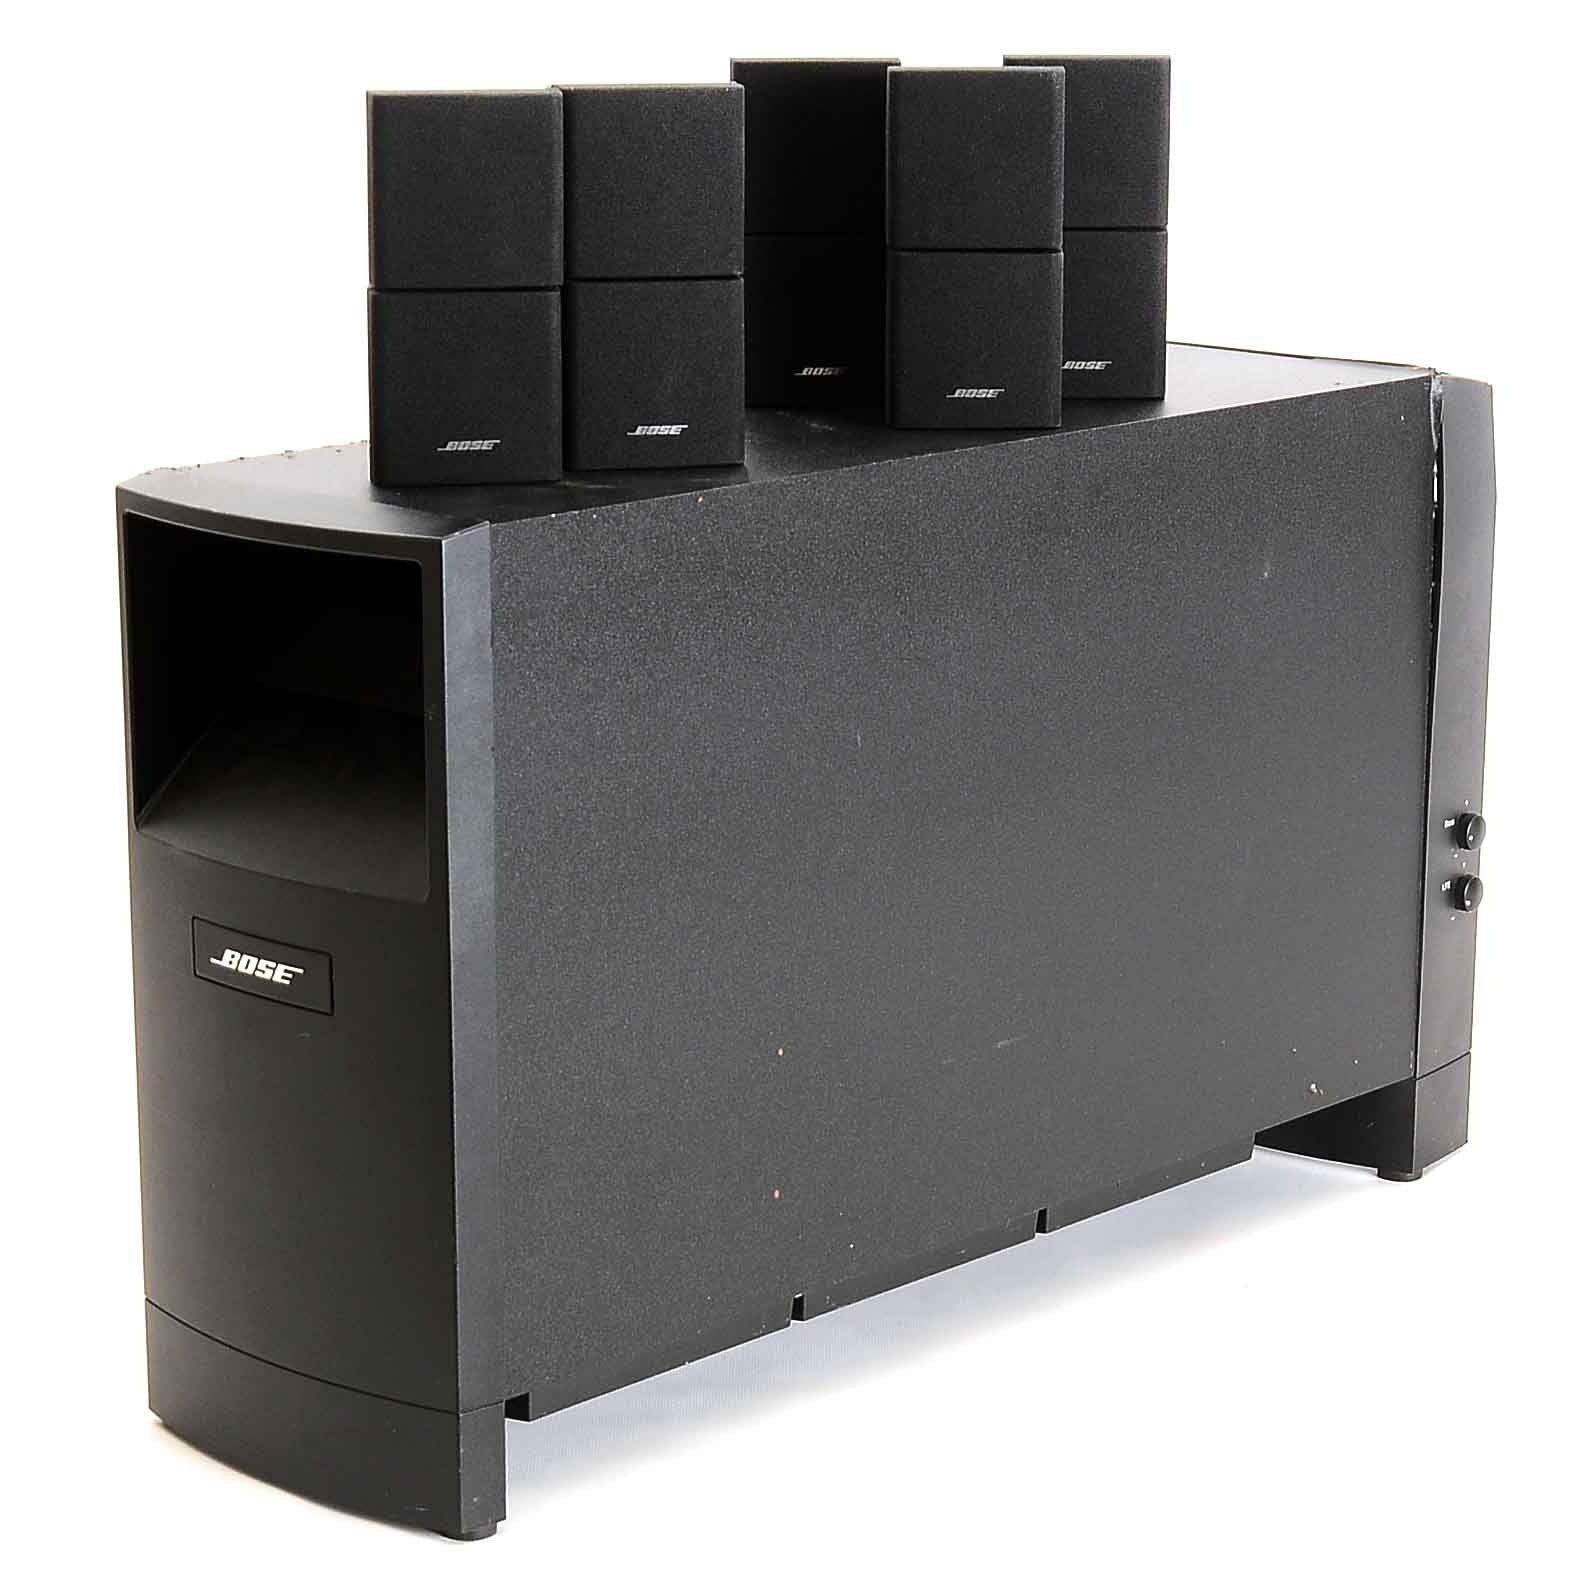 Bose Acoustimass 15 Series Two System